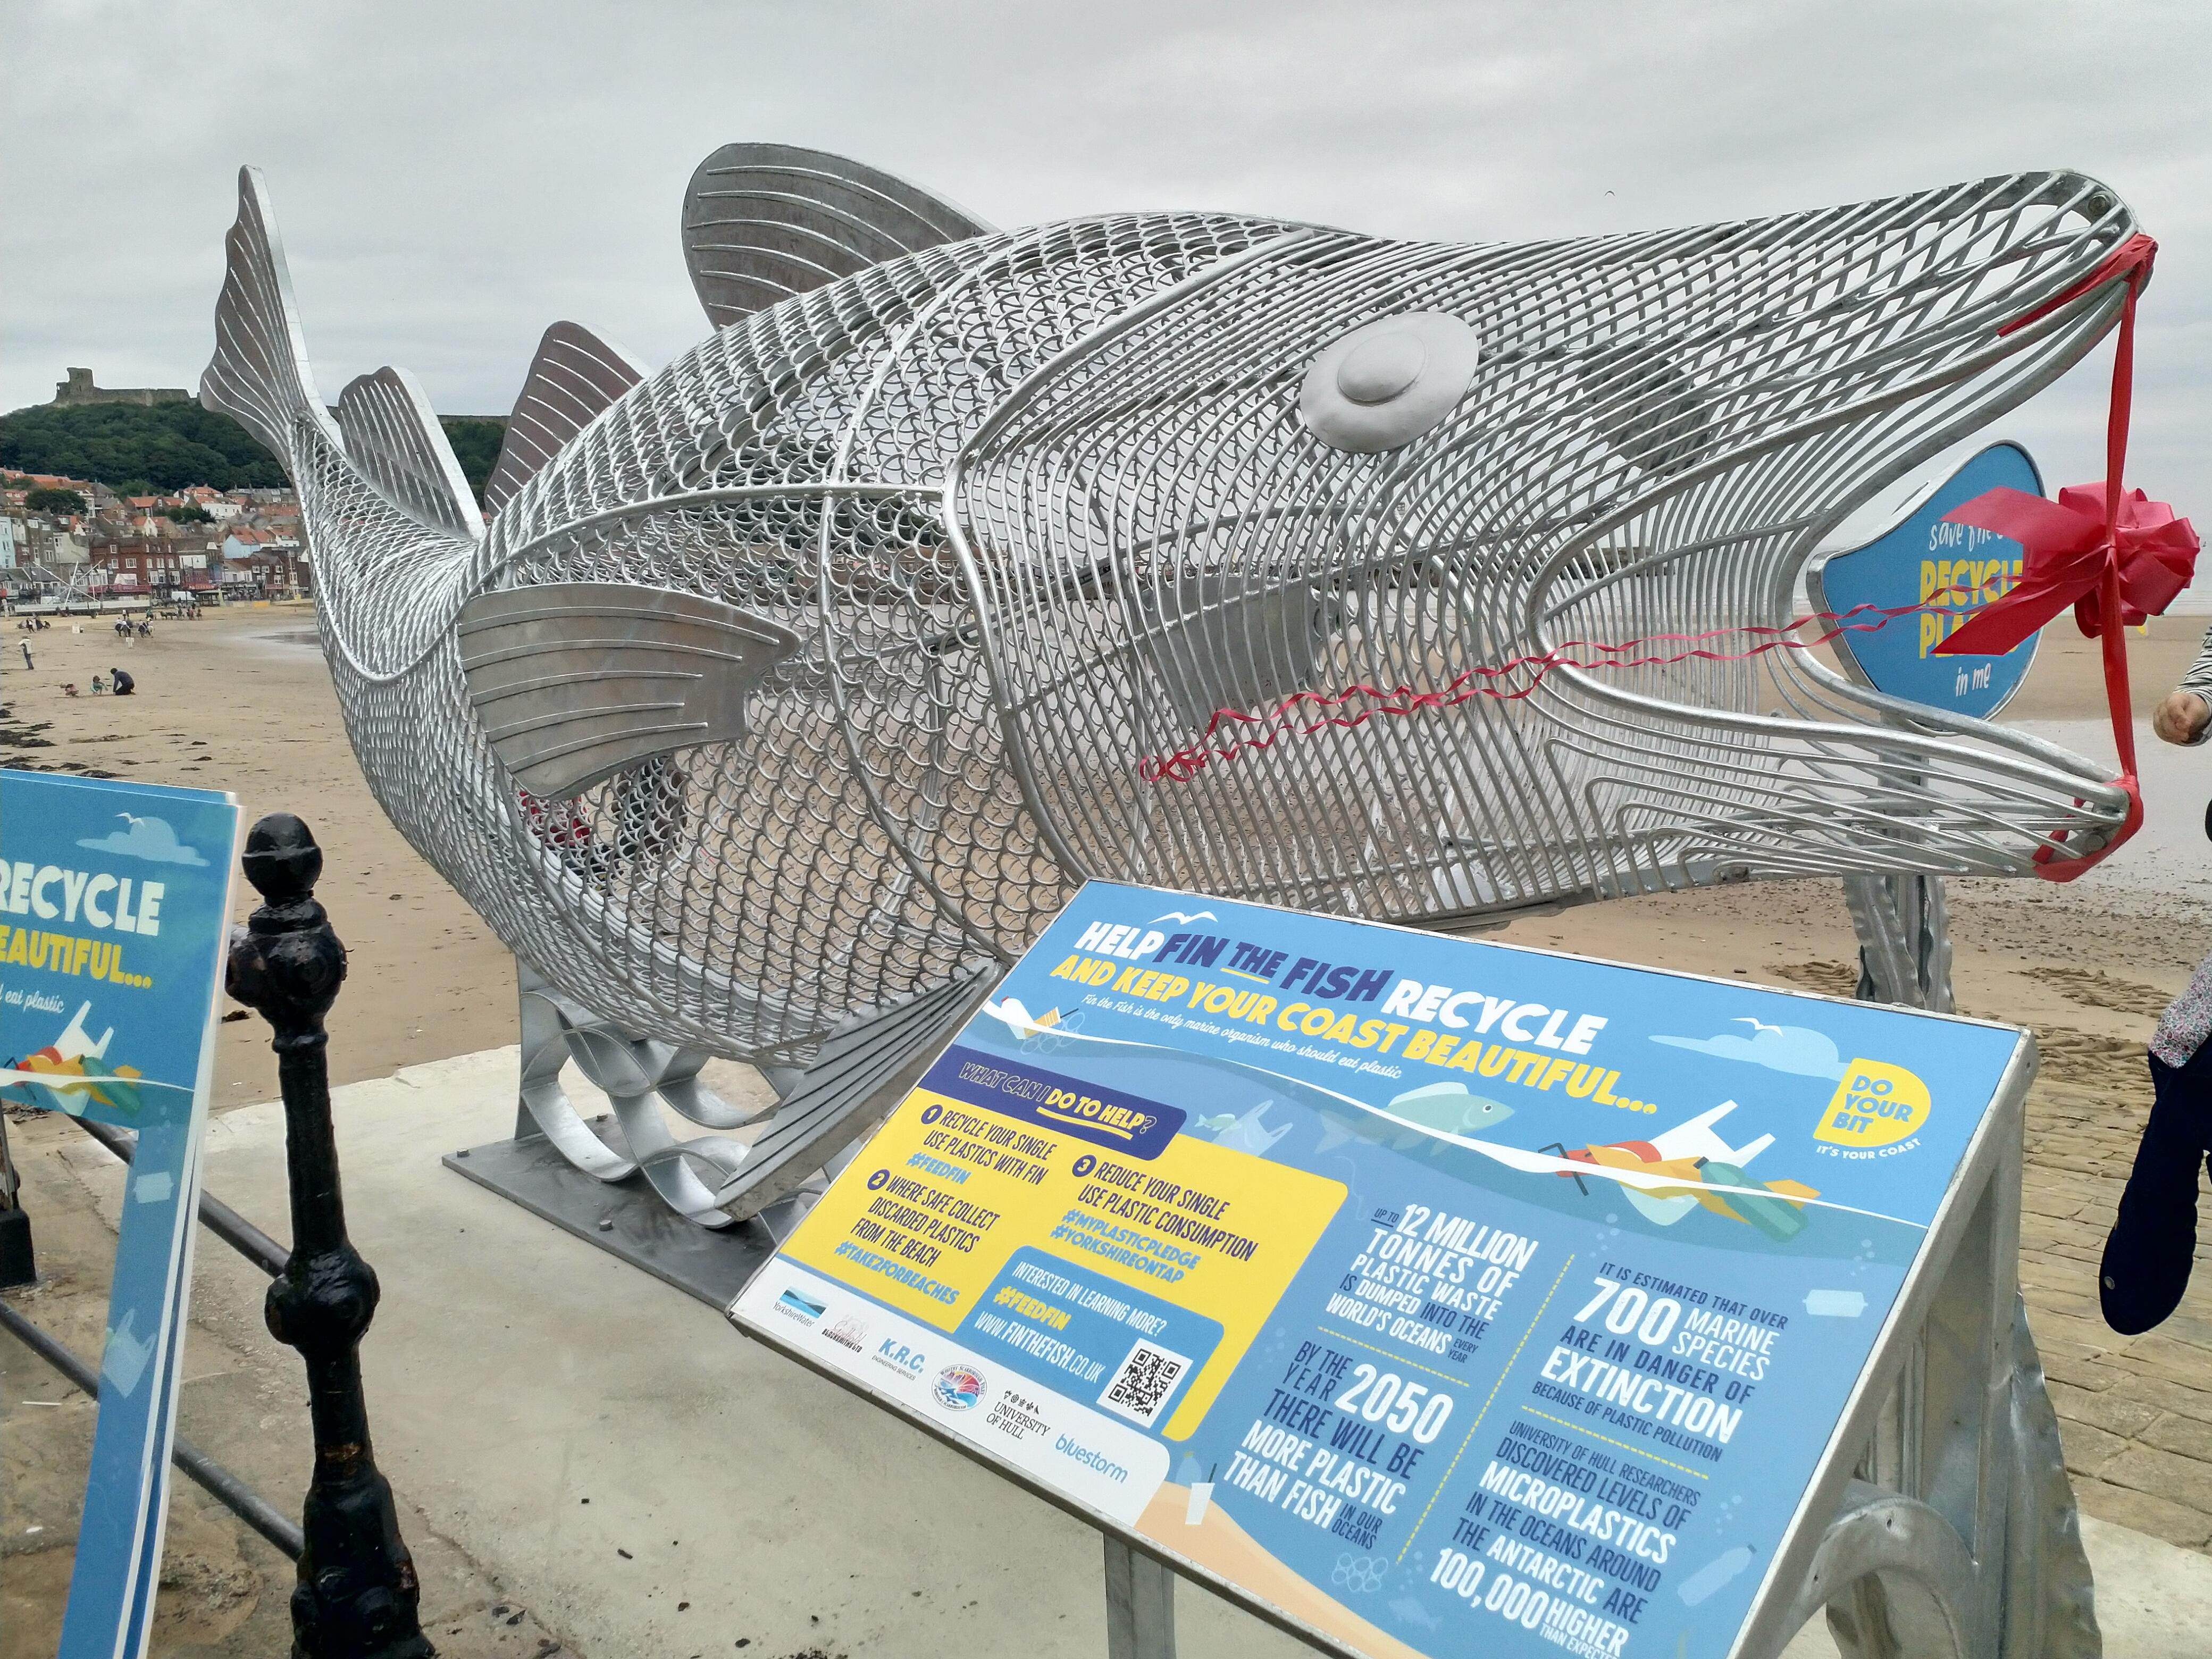 Picture of the Fin the Fish sculpture and receptacle